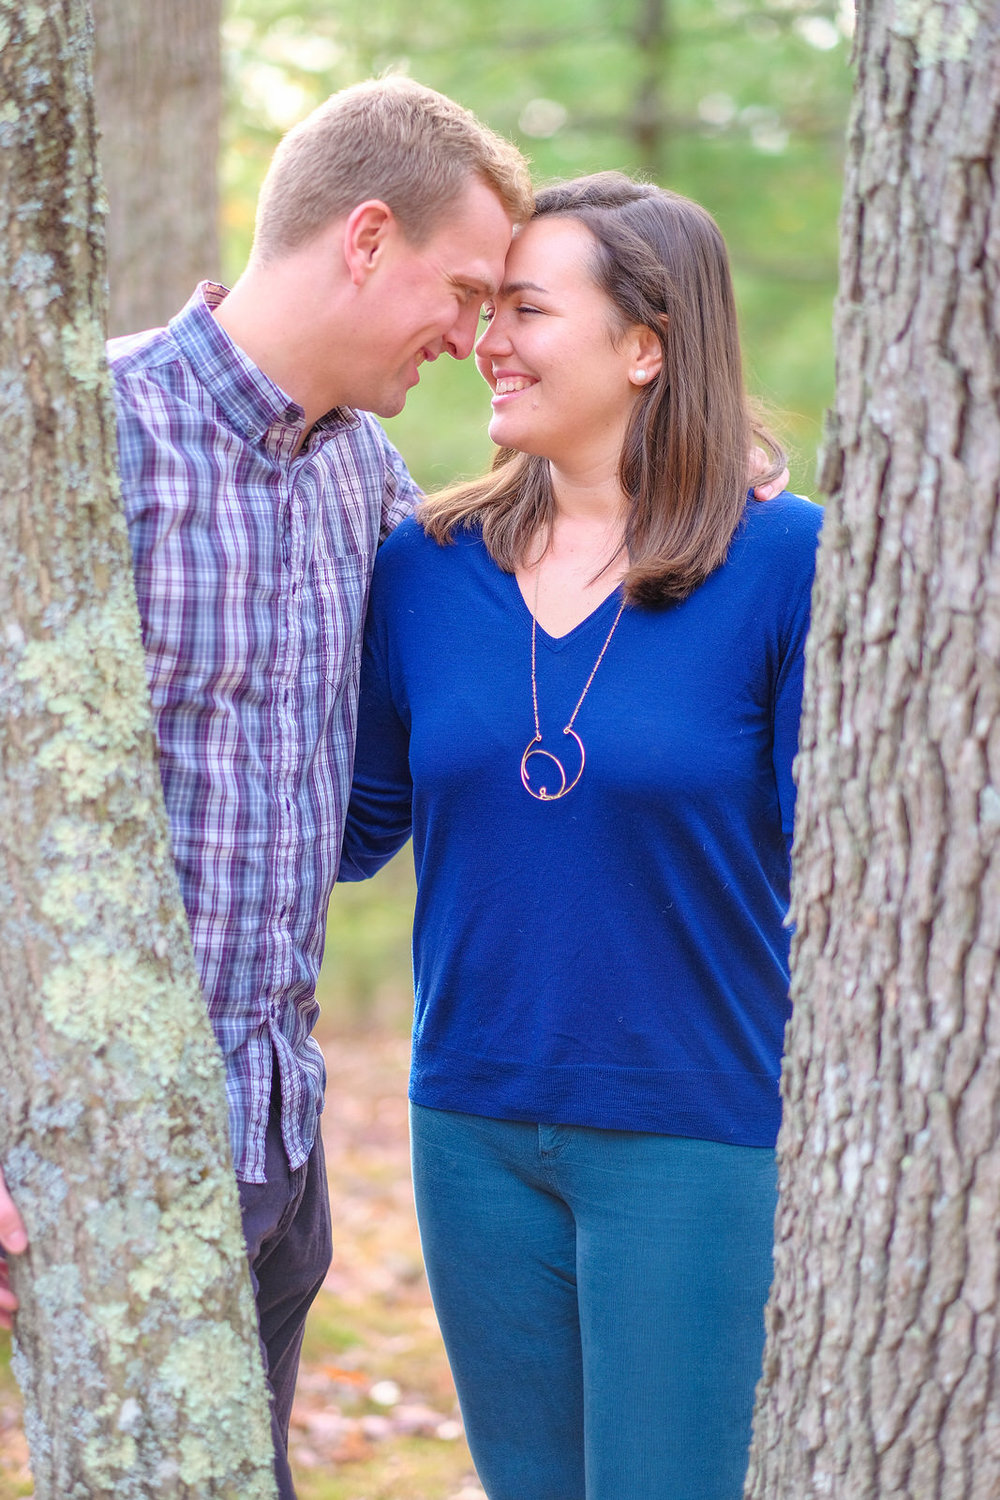 medford-engagement-photography-145.jpg